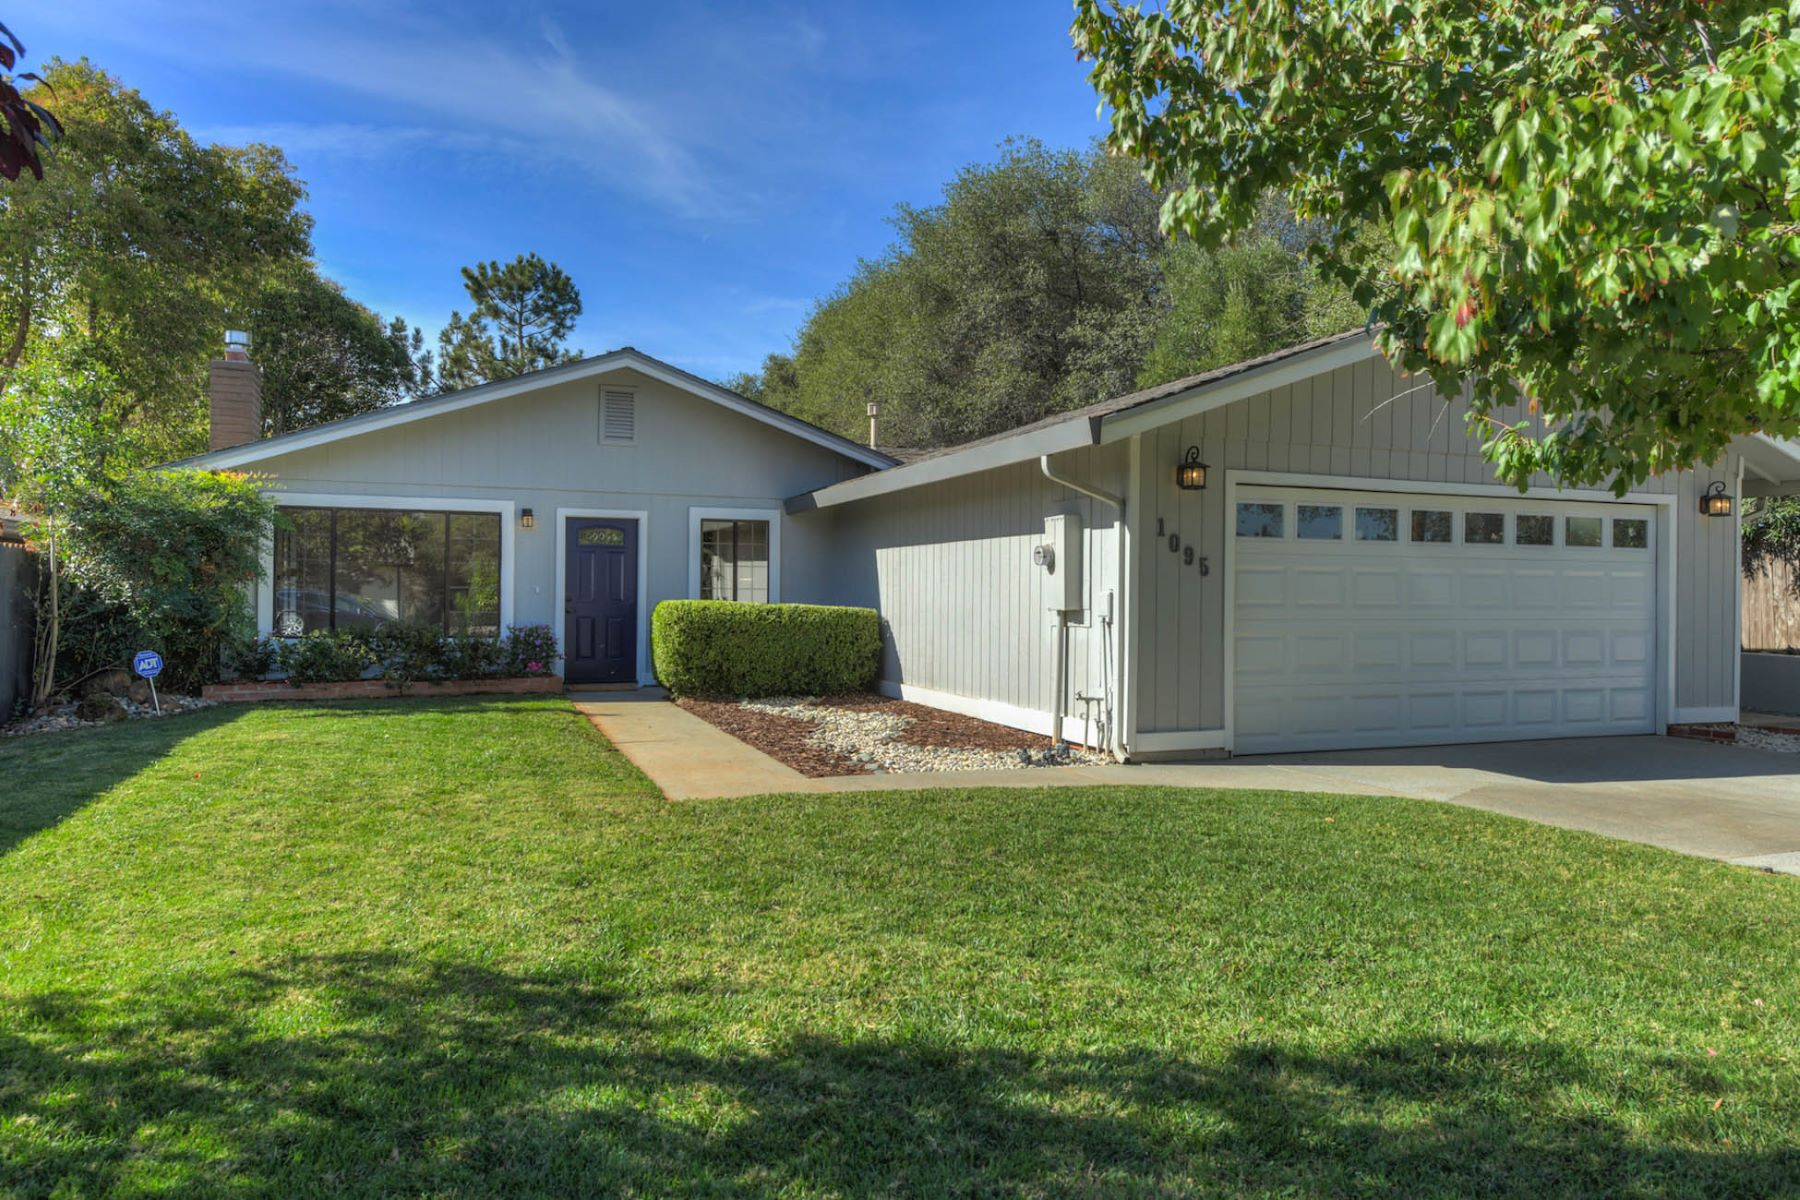 Single Family Homes for Active at 1095 Matson Dr,Auburn, CA 95603 1095 Matson Dr Auburn, California 95603 United States